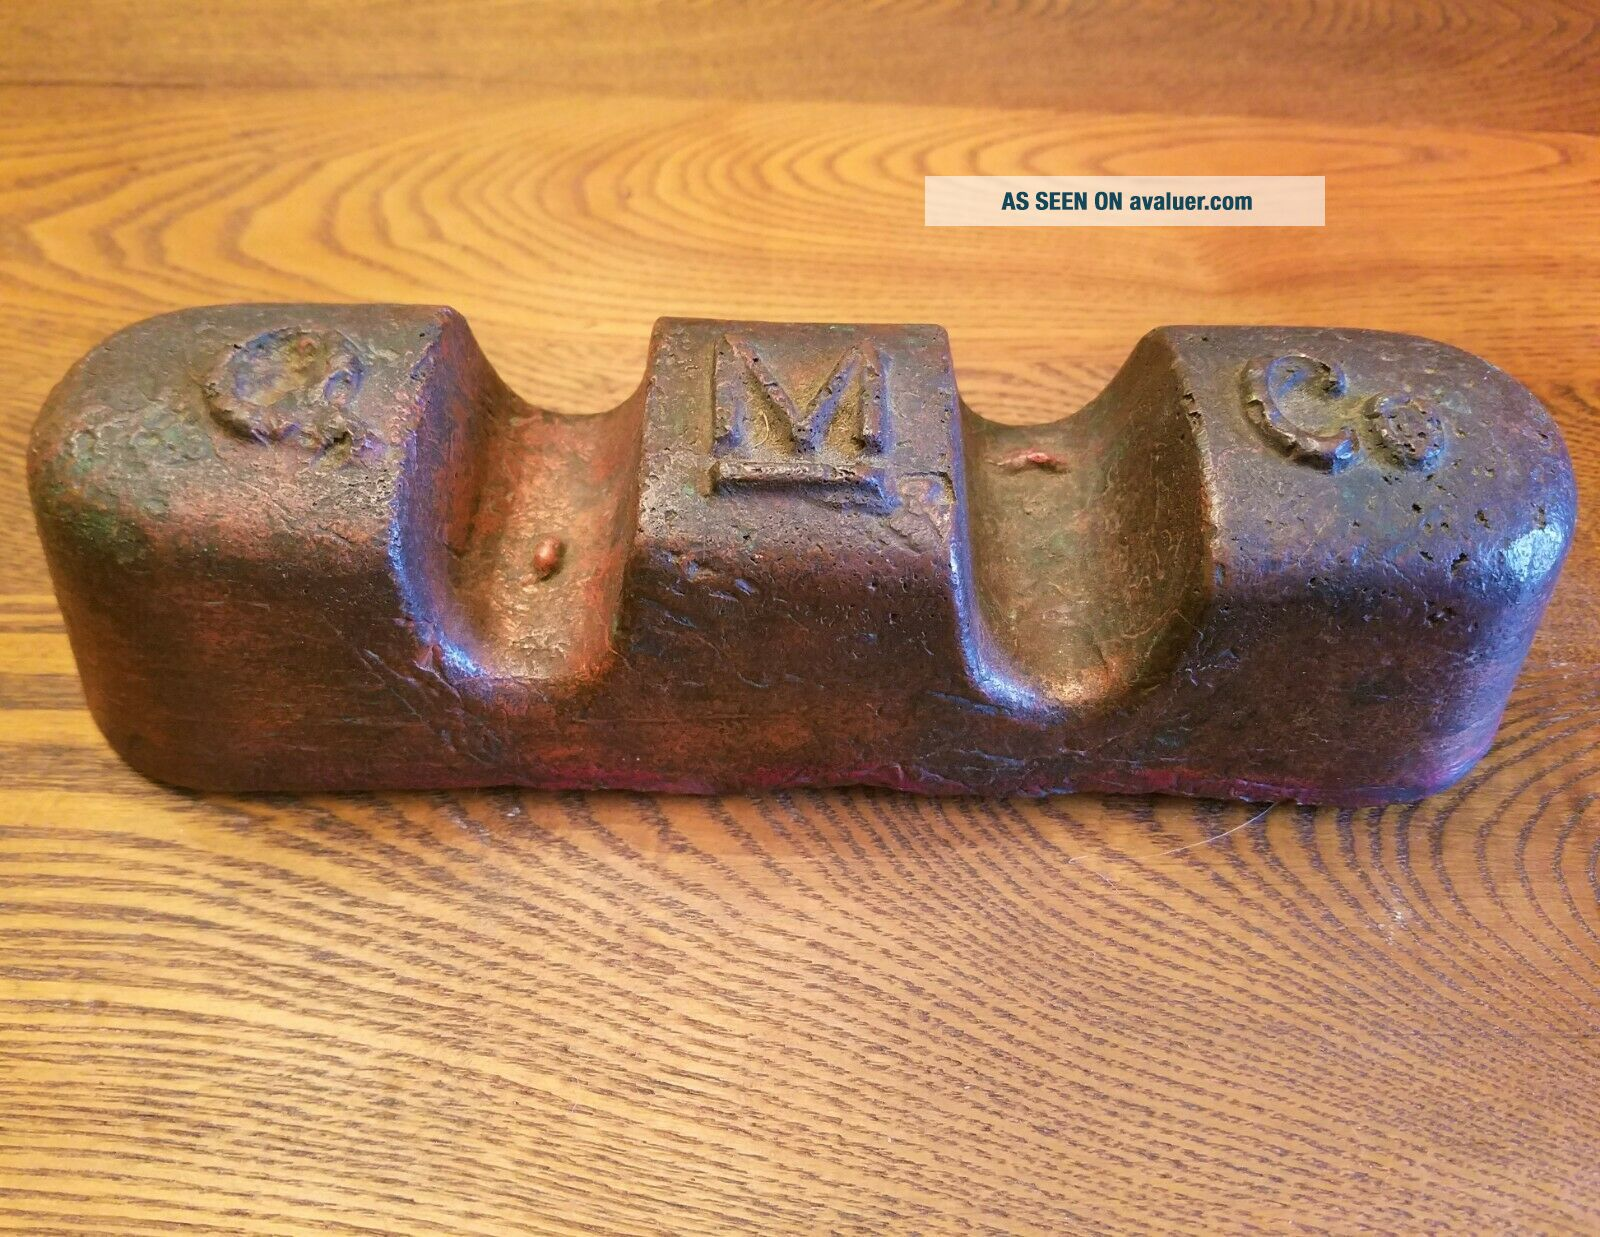 ANTIQUE 10 COPPER INGOT QUINCY MINING COMPANY INGOT HANCOCK MICHIGAN